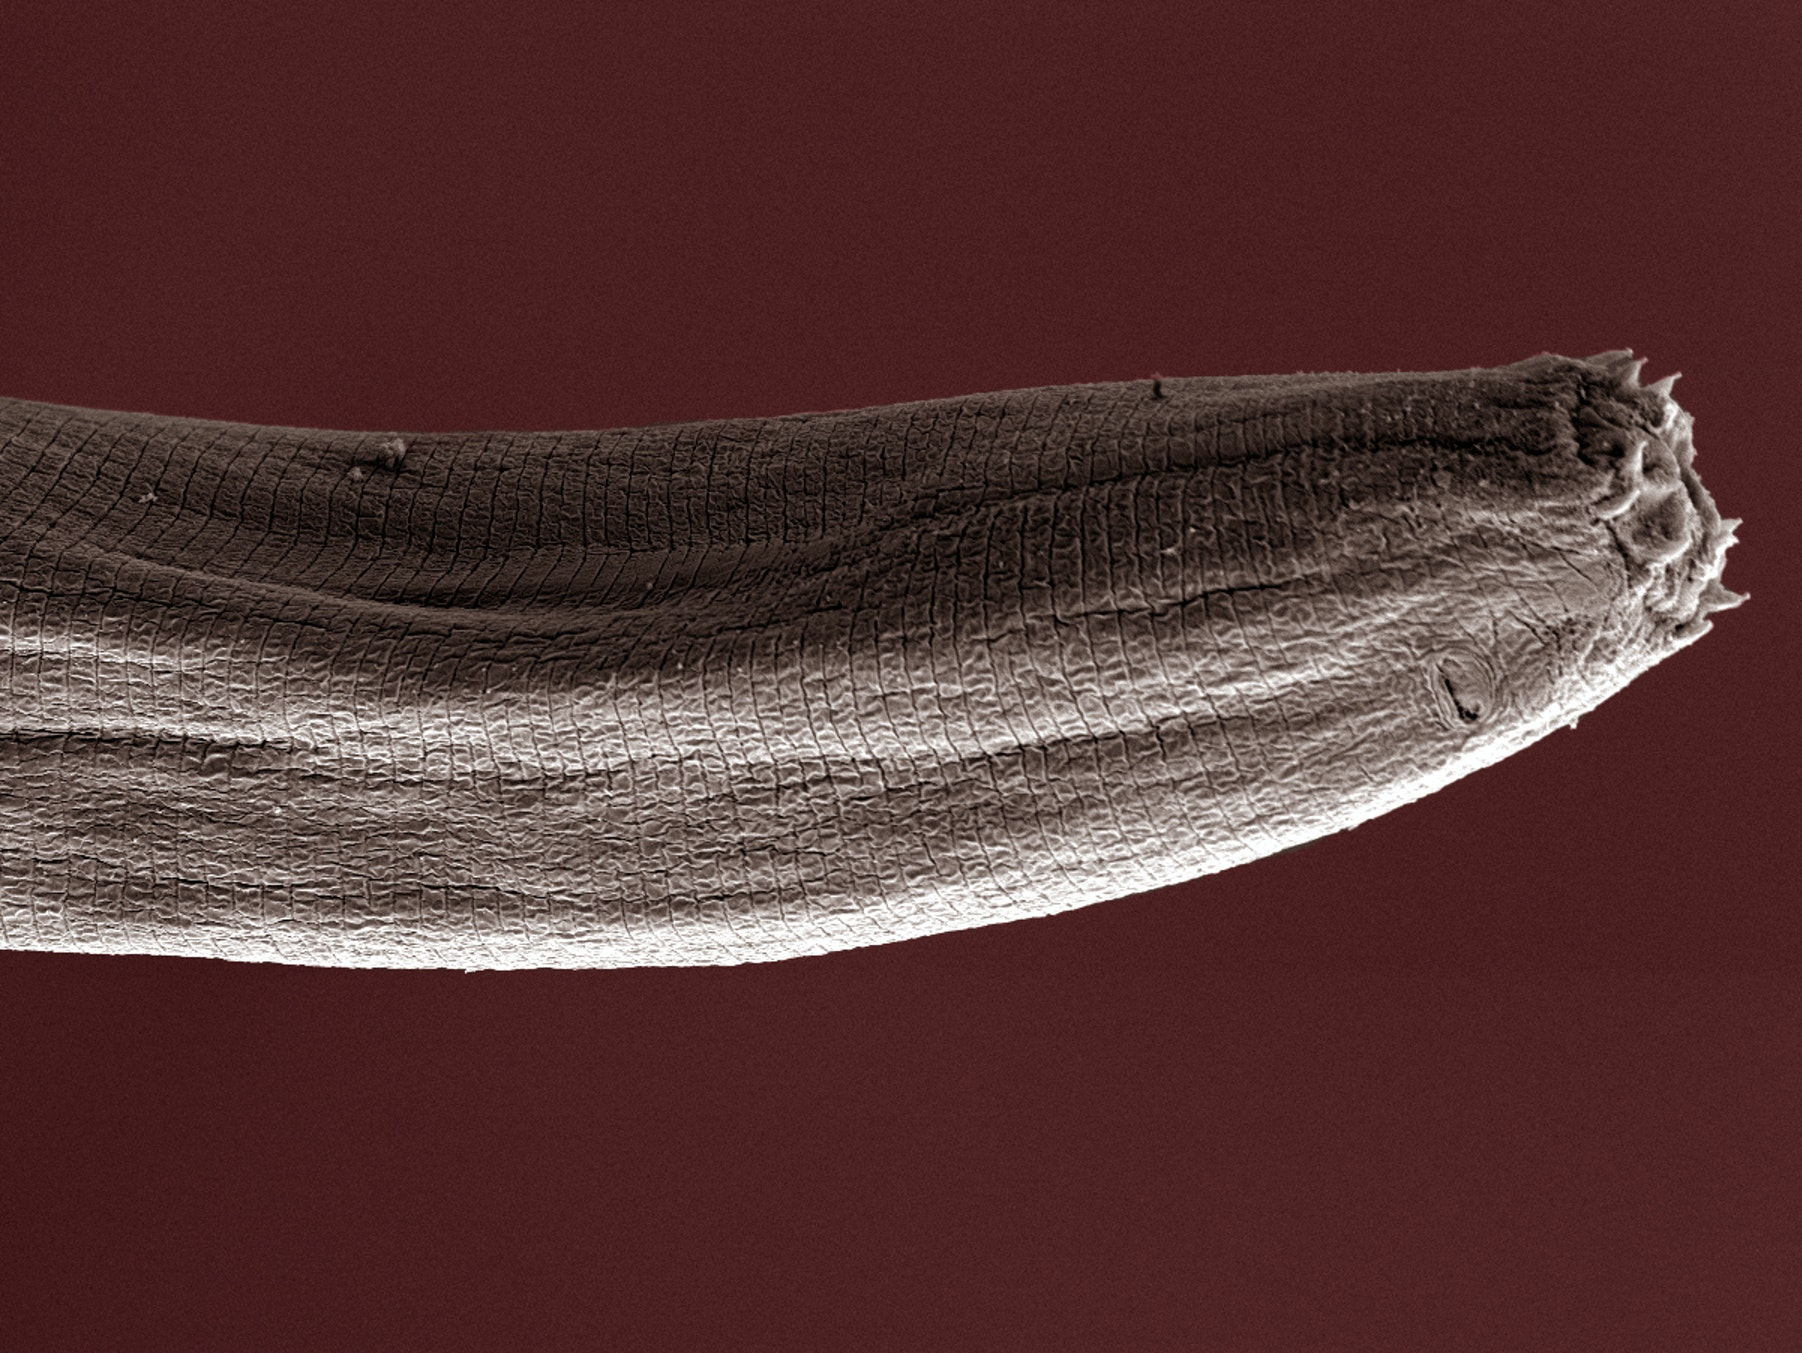 Scientists Are Puzzled by New Worms That Have No Dicks